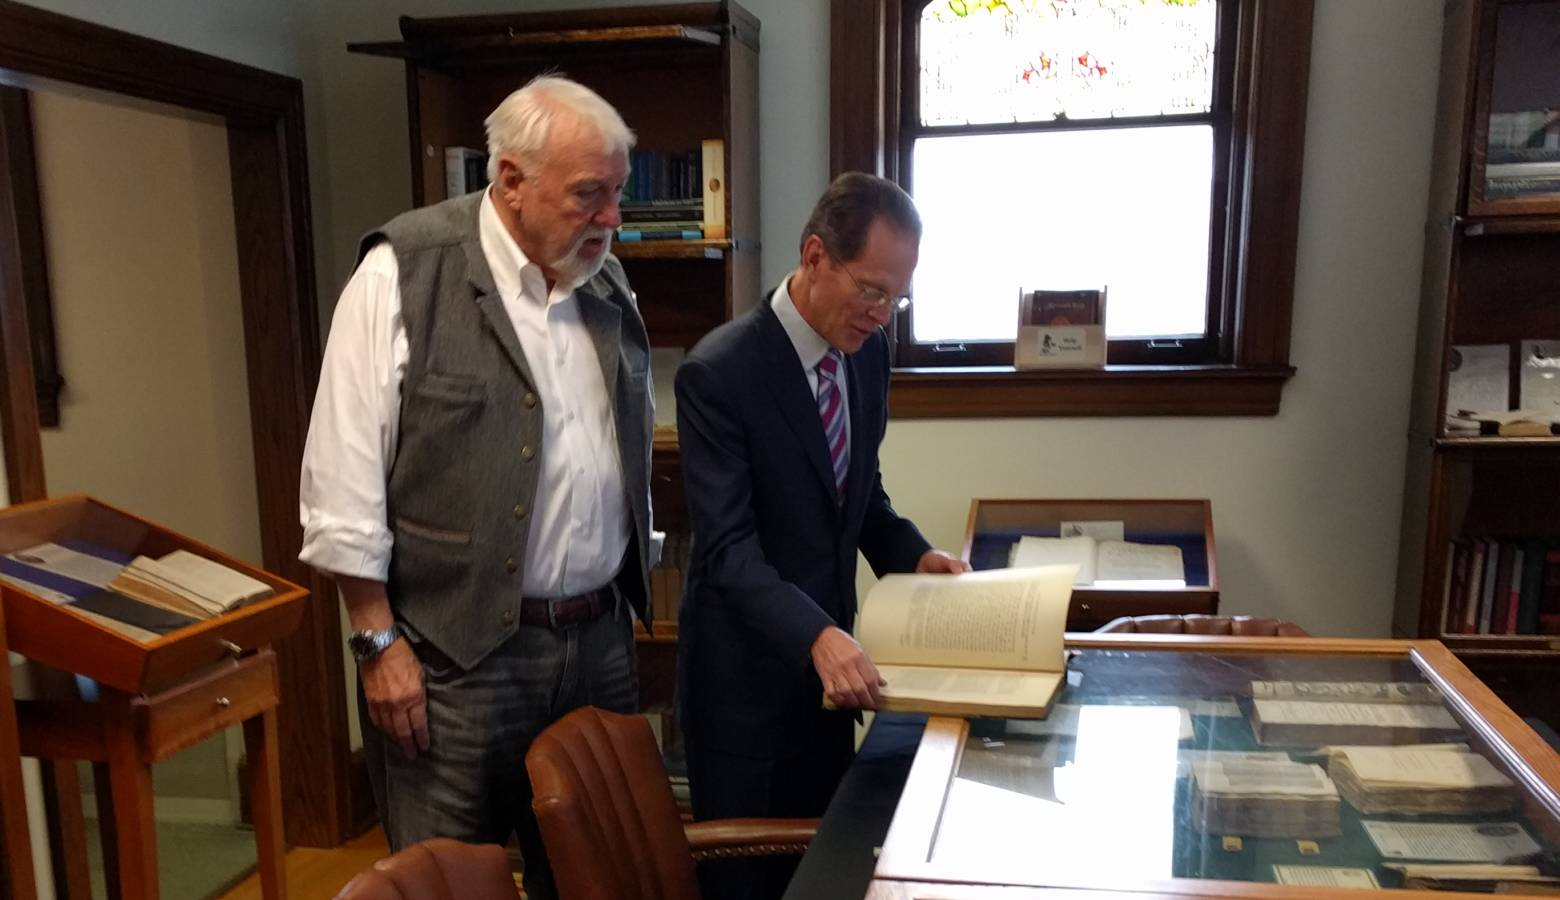 Ball State University President Geoffrey Mearns looks through Blackstones Magna Carta with Remnant Trust founder Brian Bex.